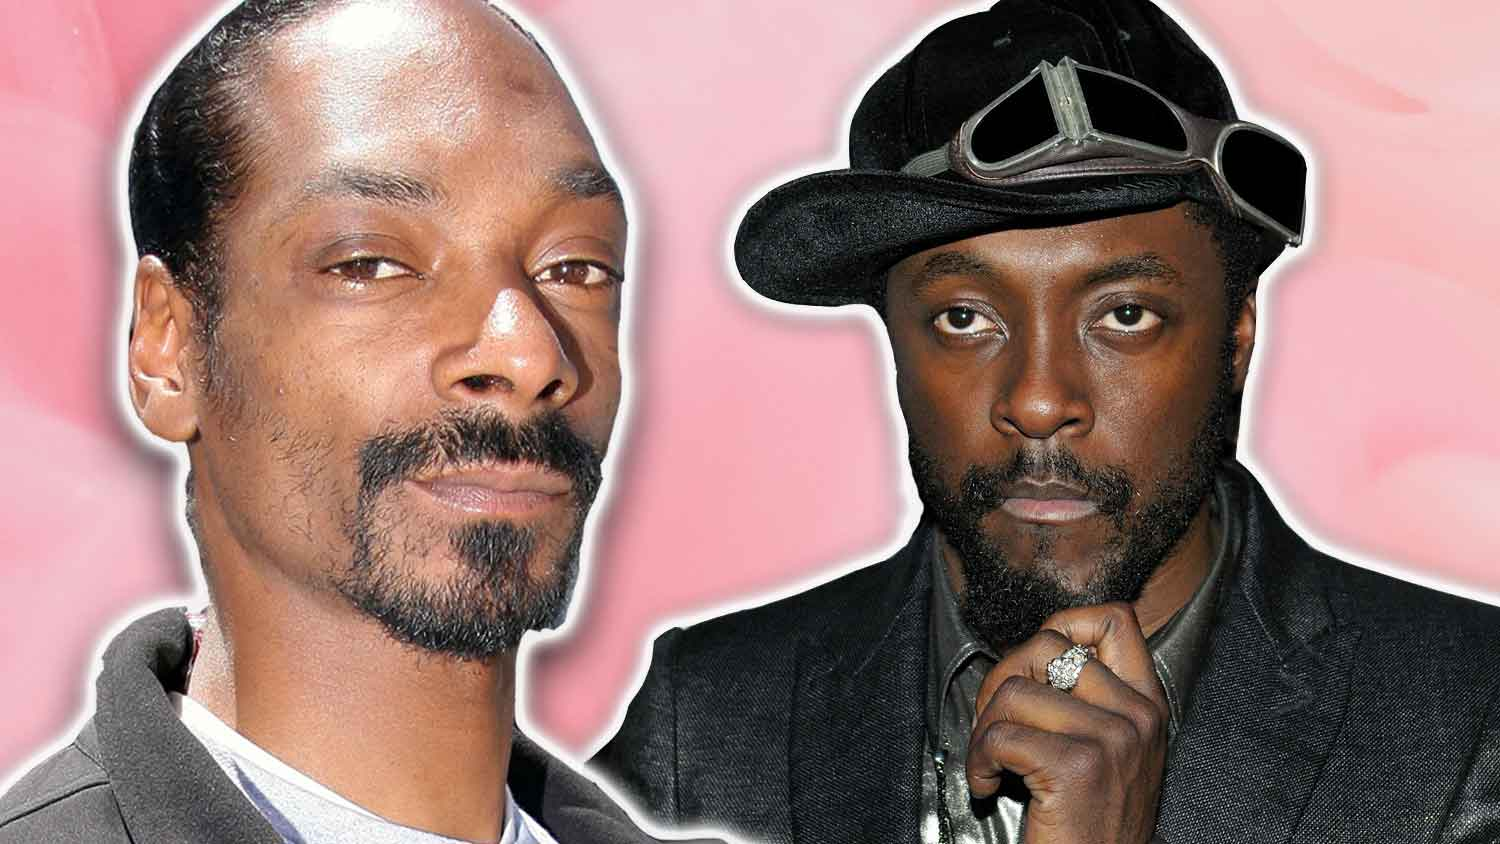 Snoop Dogg and Will.i.am Want You to 'Be Nice'